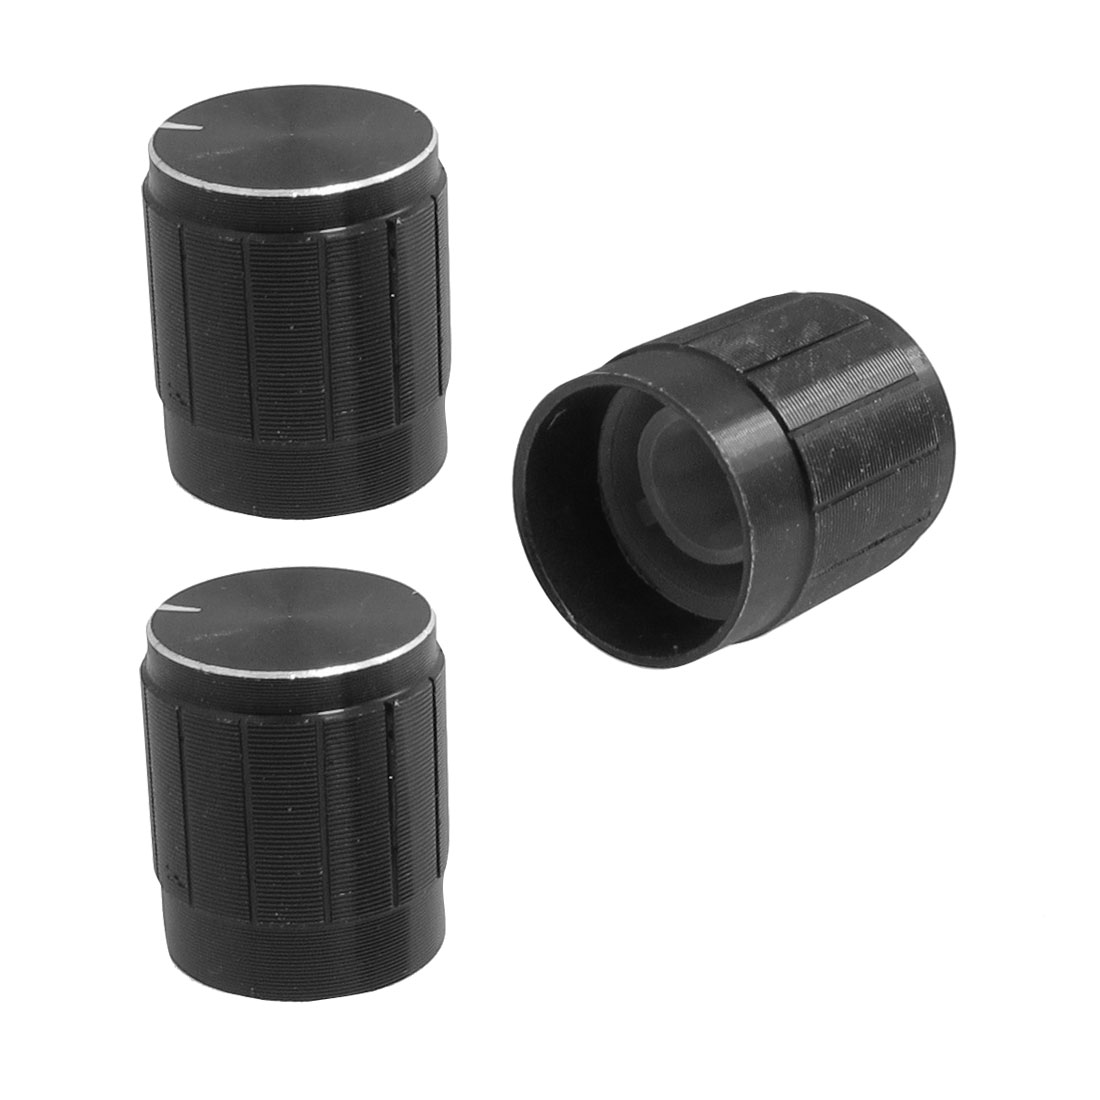 "3 Pcs 0.59"" x 0.67"" Potentiometer Control Volume Knob Cap Black"